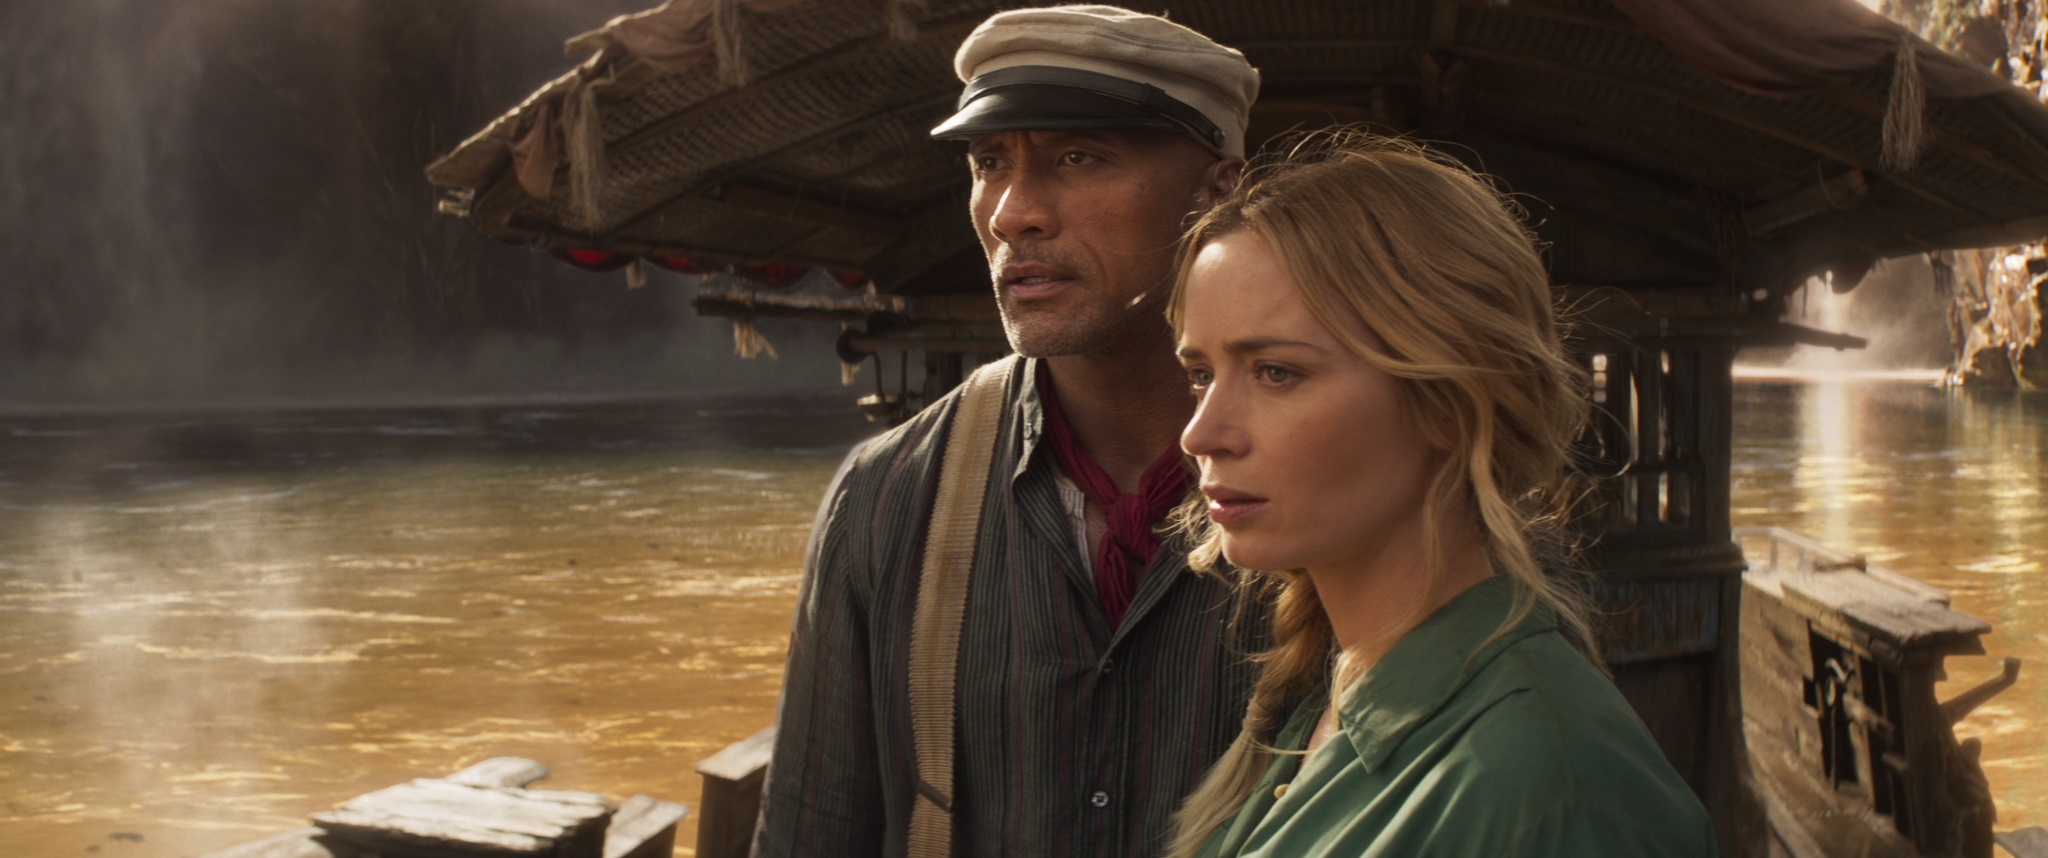 Dwayne Johnson and Emily Blunt in Jungle Cruise (2021)